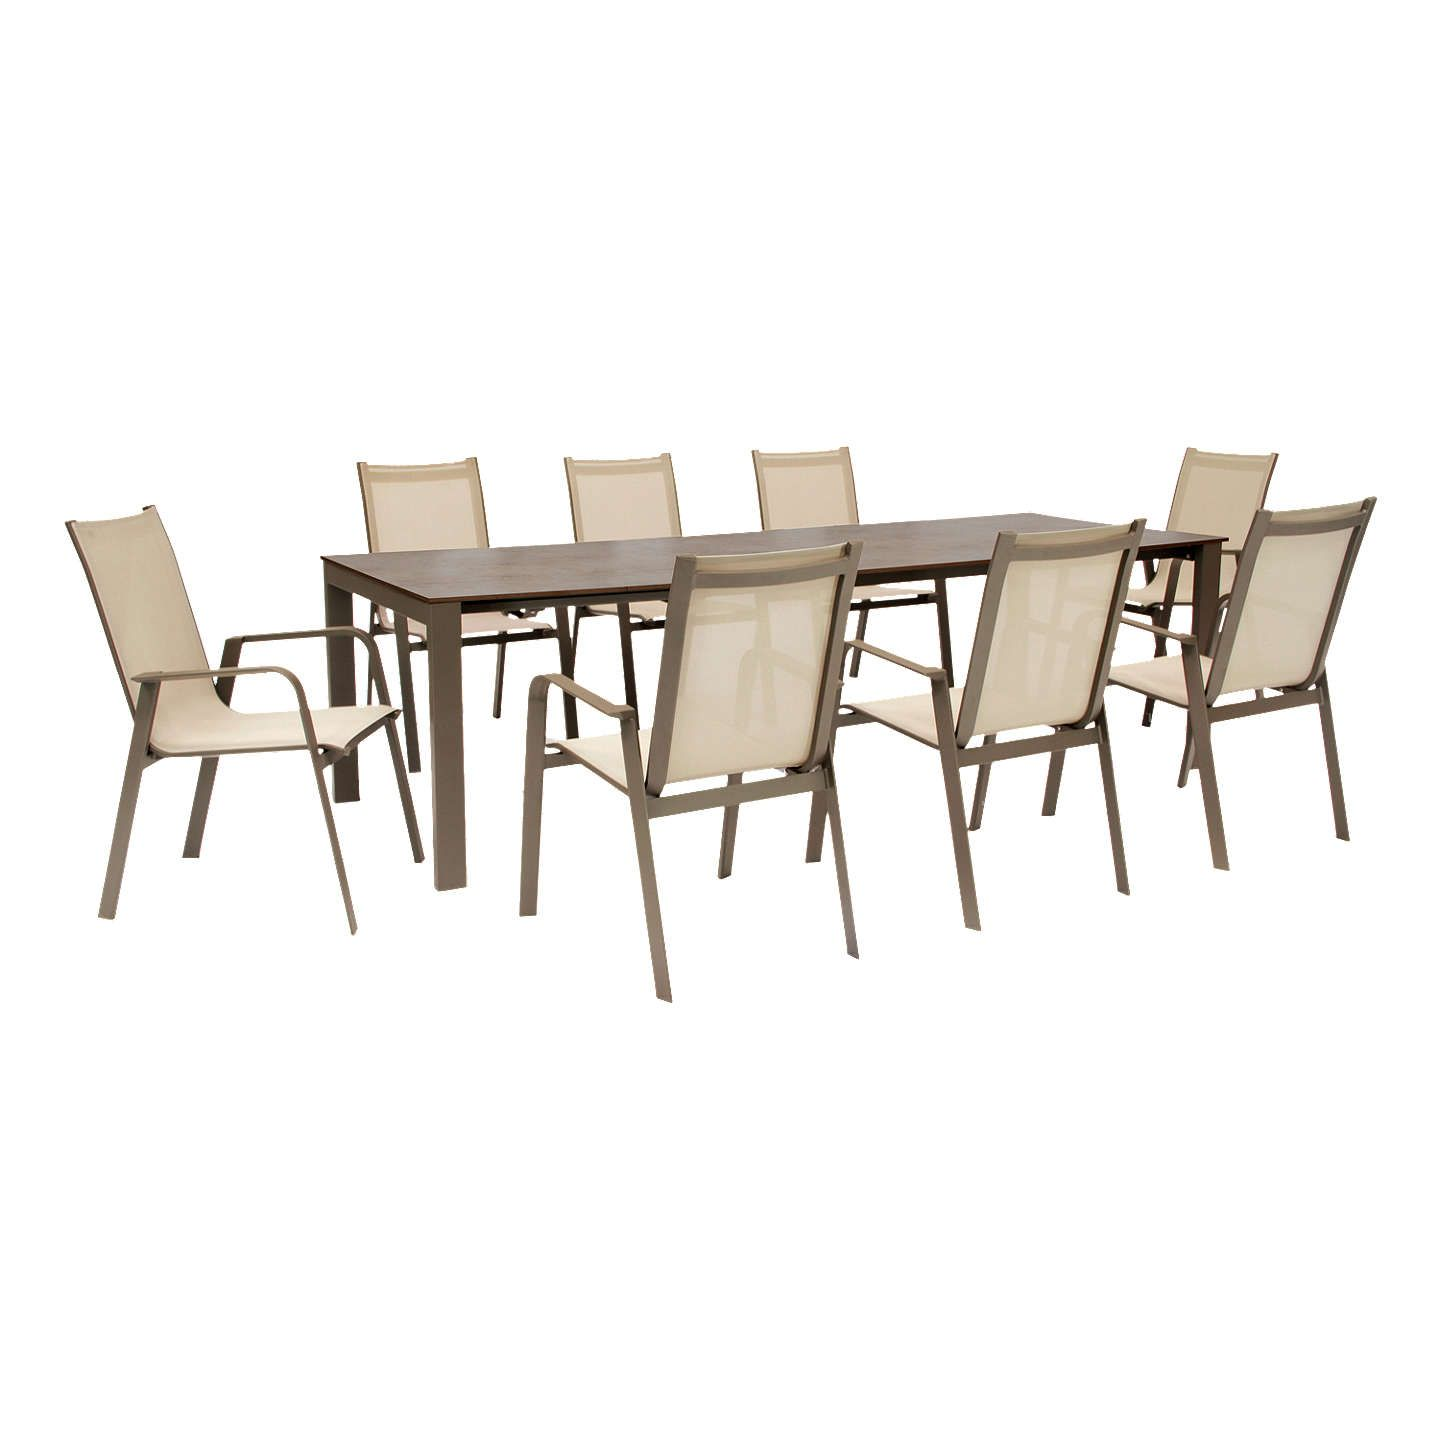 Kettler Paros 8 Seater Garden Dining Table And Chairs Set Grey: KETTLER Milano 8 Seater Garden Table And Chairs Set, Taupe